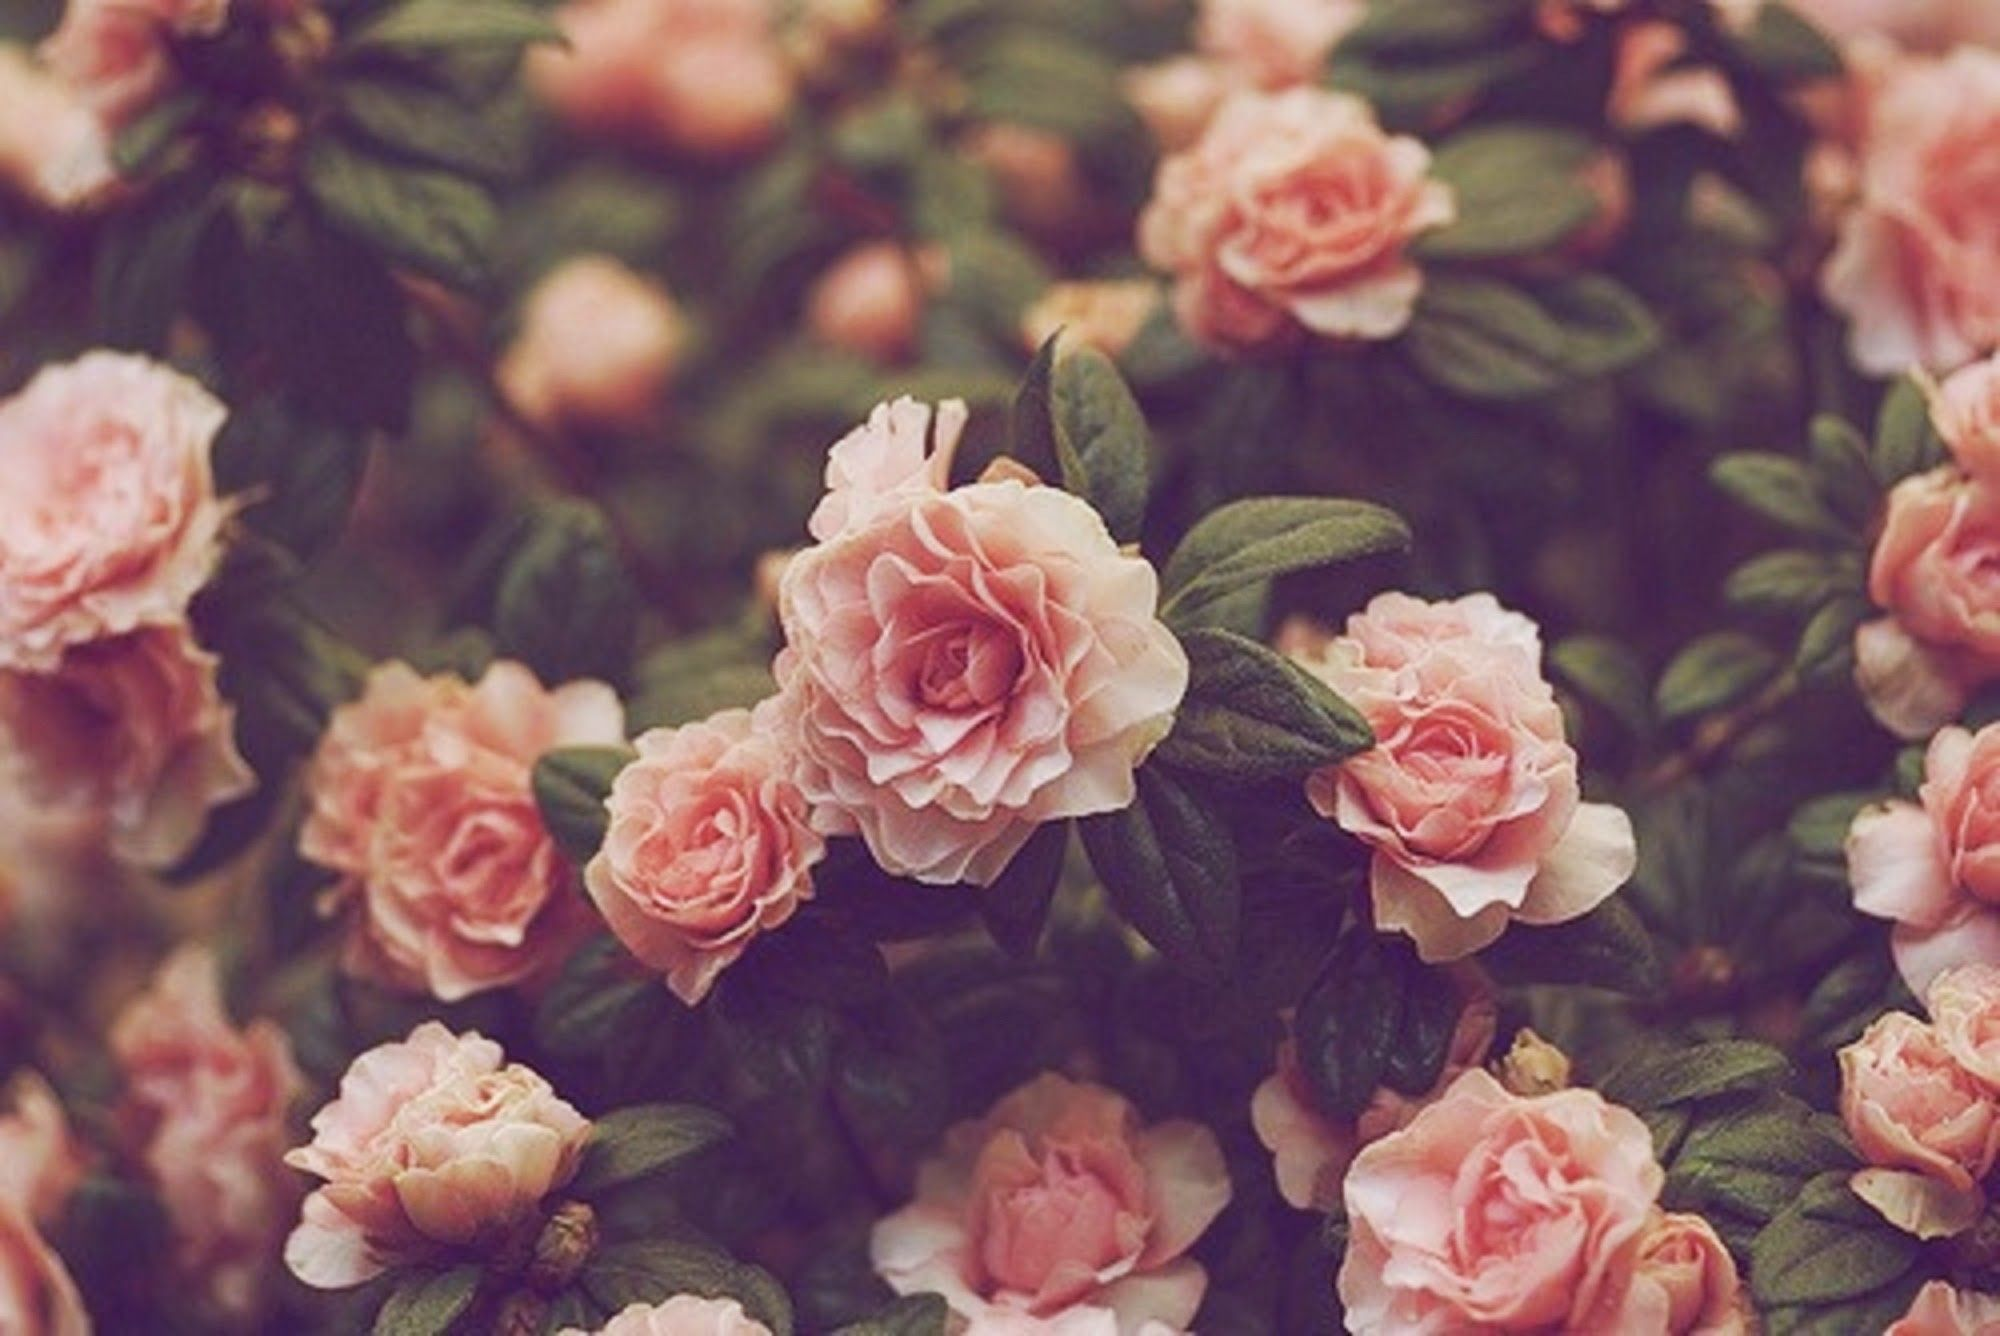 2000x1336 Hipster Flower Backgrounds (51+ images)